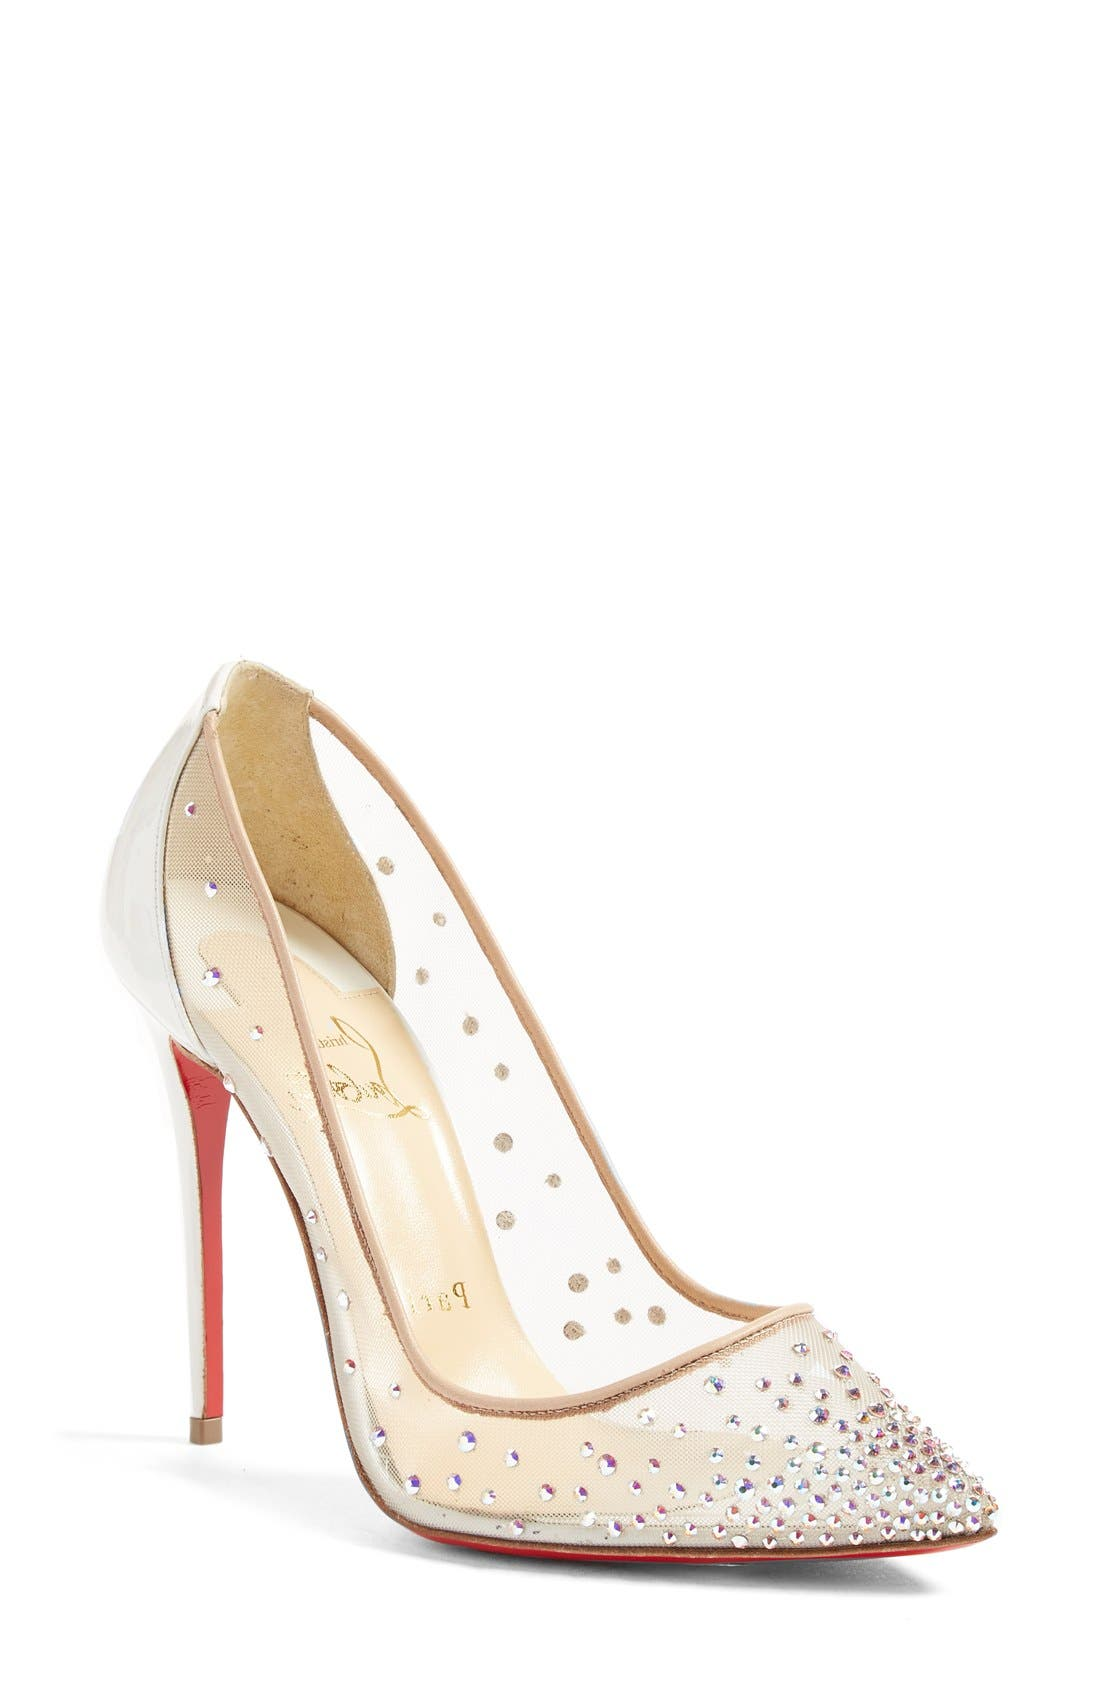 Alternate Image 1 Selected - Christian Louboutin Follies Strass Pointy Toe Pump